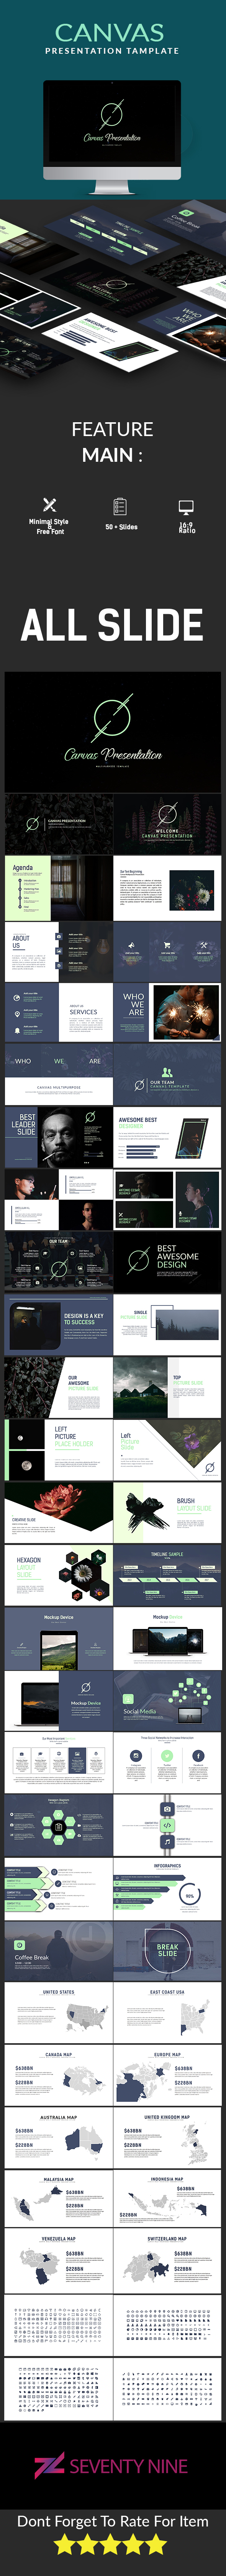 Canvas Multipurpose Google Slide Template - Google Slides Presentation Templates